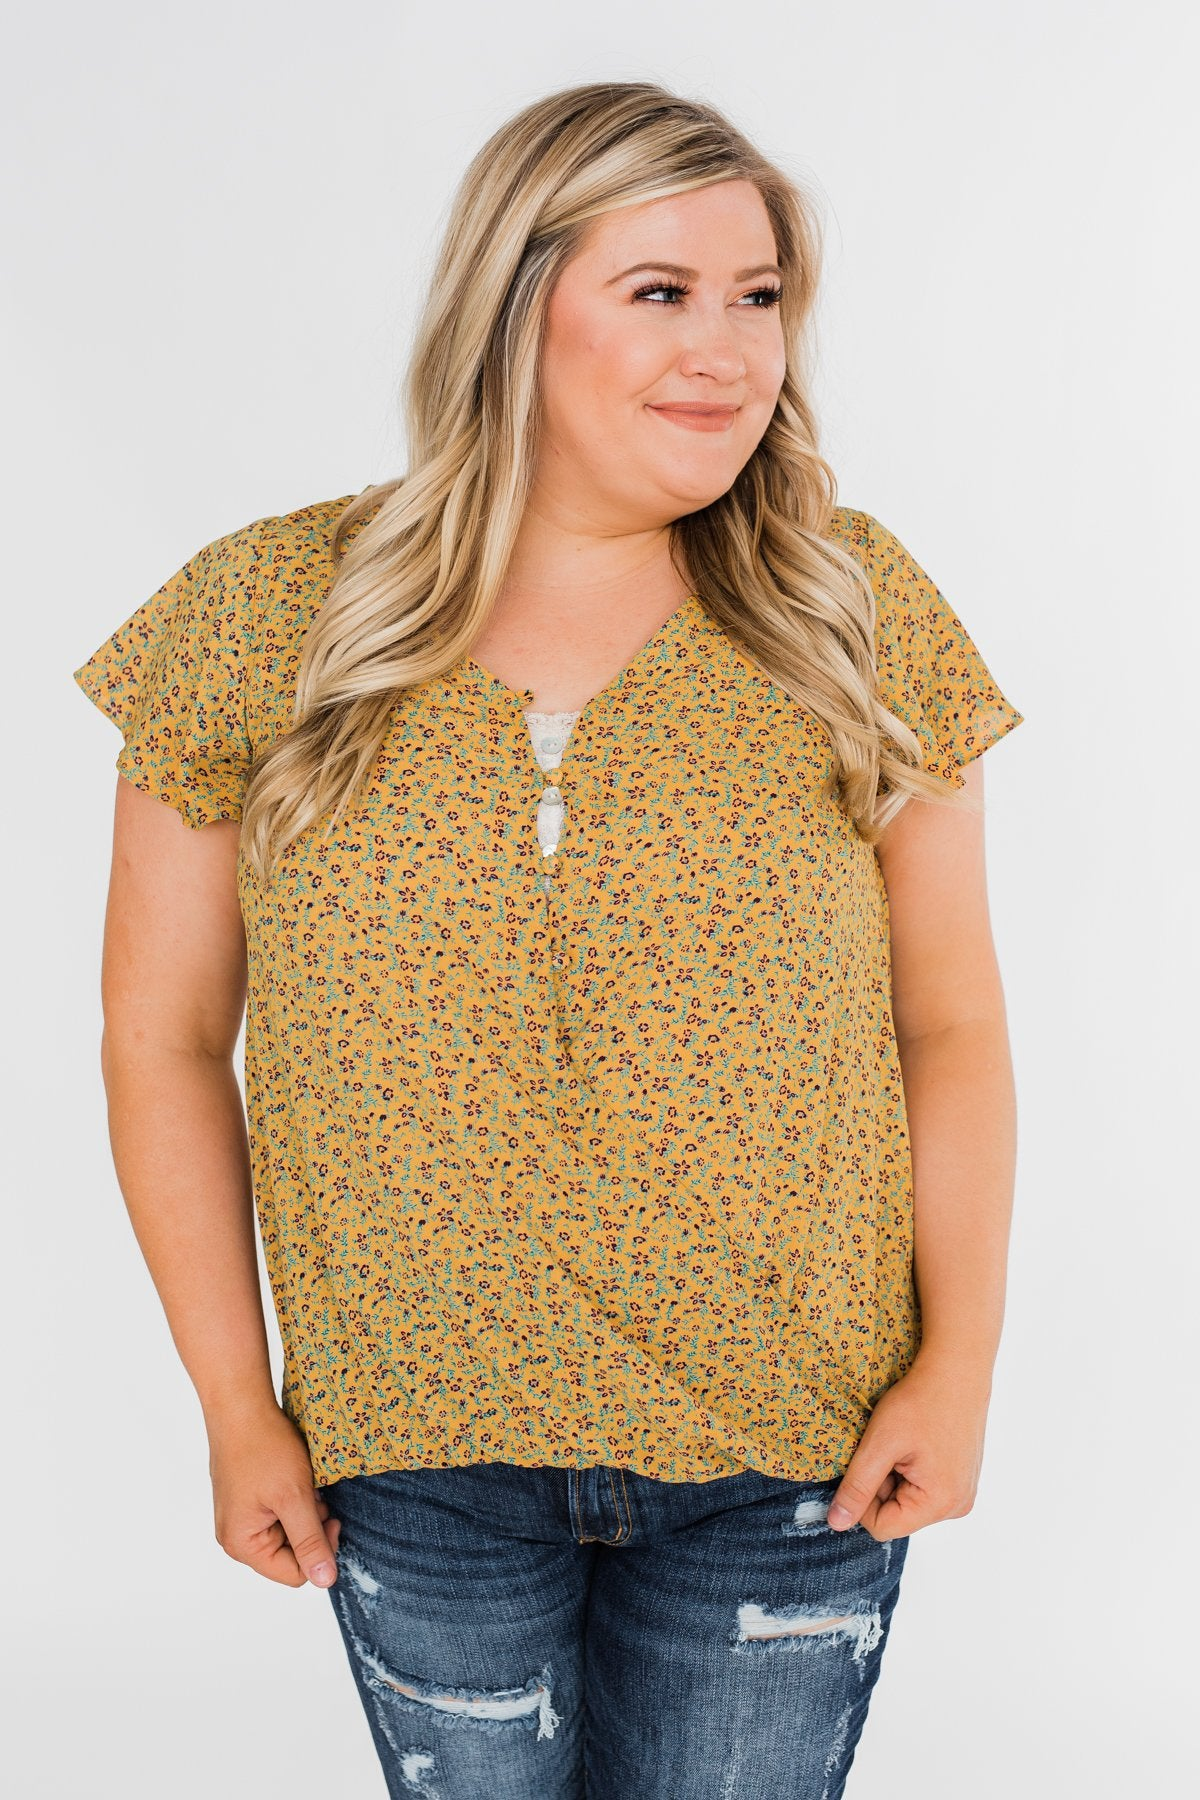 Moving On Floral Botton and Wrap Top- Mustard